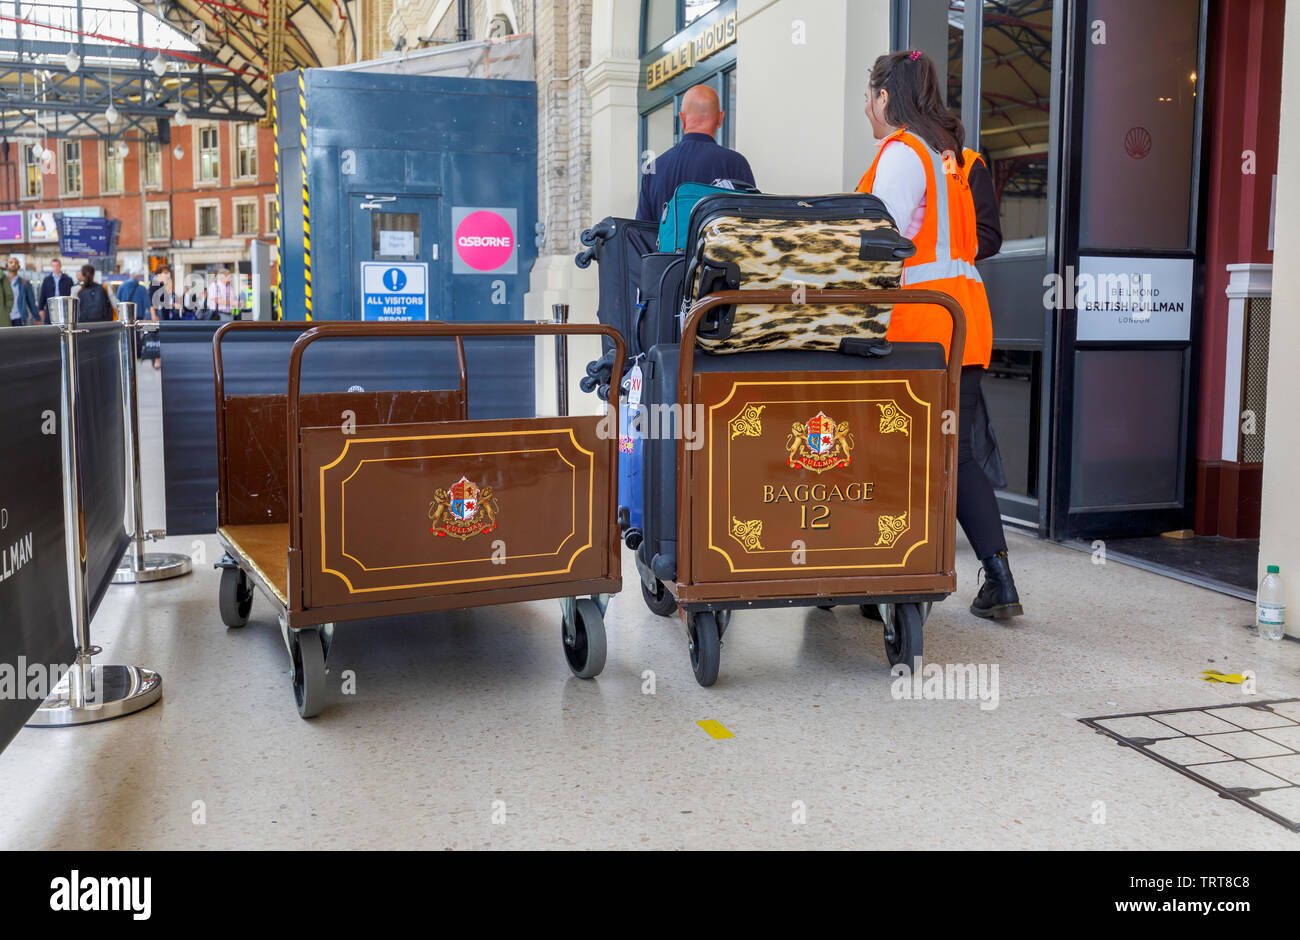 Pullman baggage luggage trollies with suitcases at the entrance to the Belmond Venice Simplon Orient Express departure lounge, London Victoria station Stock Photo